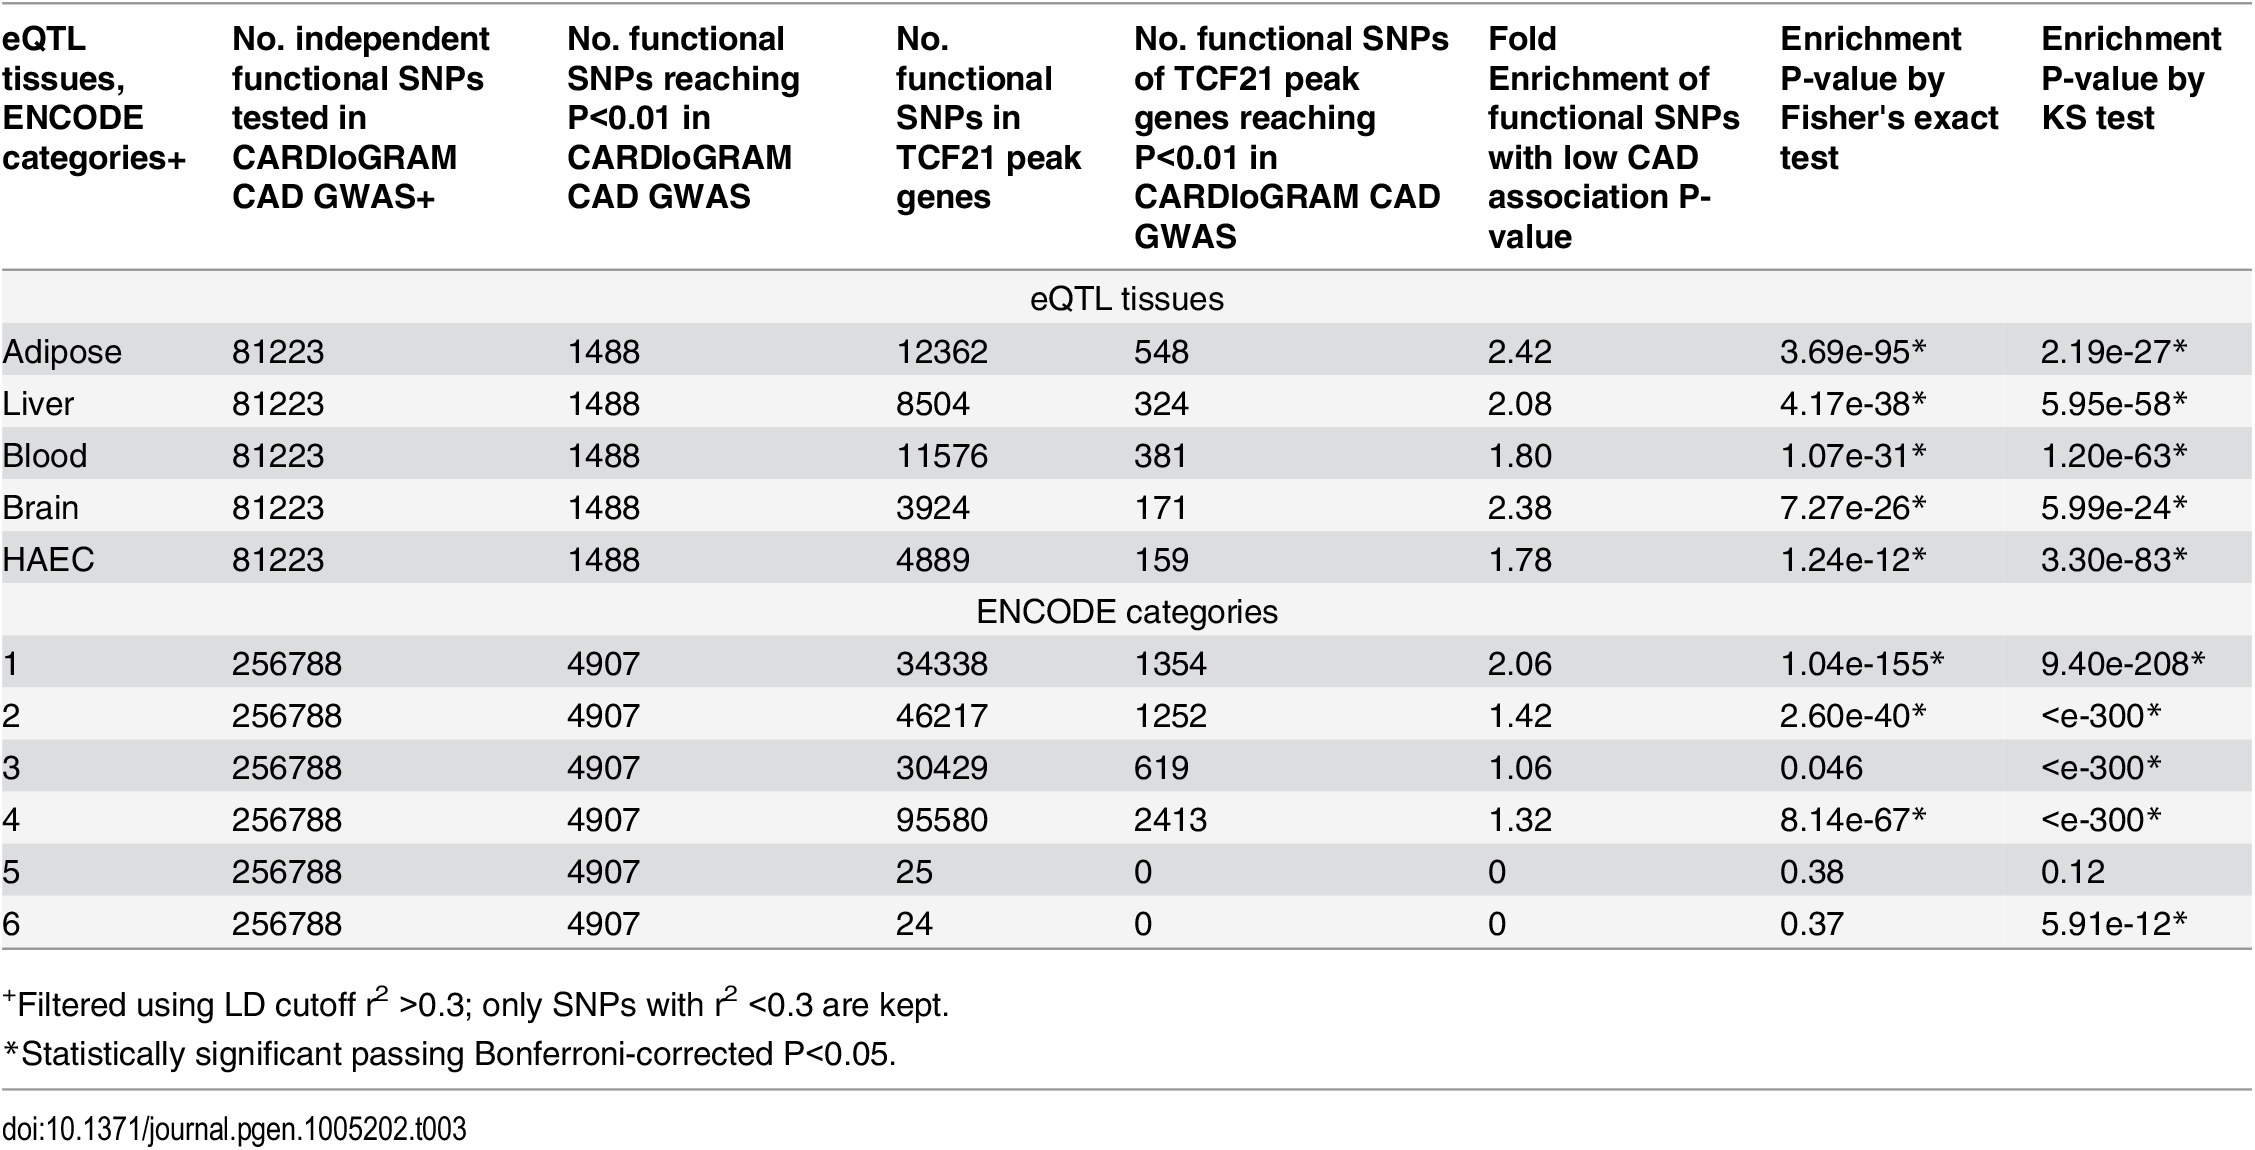 Enrichment of functional SNPs (based on eQTL mapping and ENCODE) with low P-value associations in CARDIoGRAM GWAS for SNPs of TCF21 target genes.